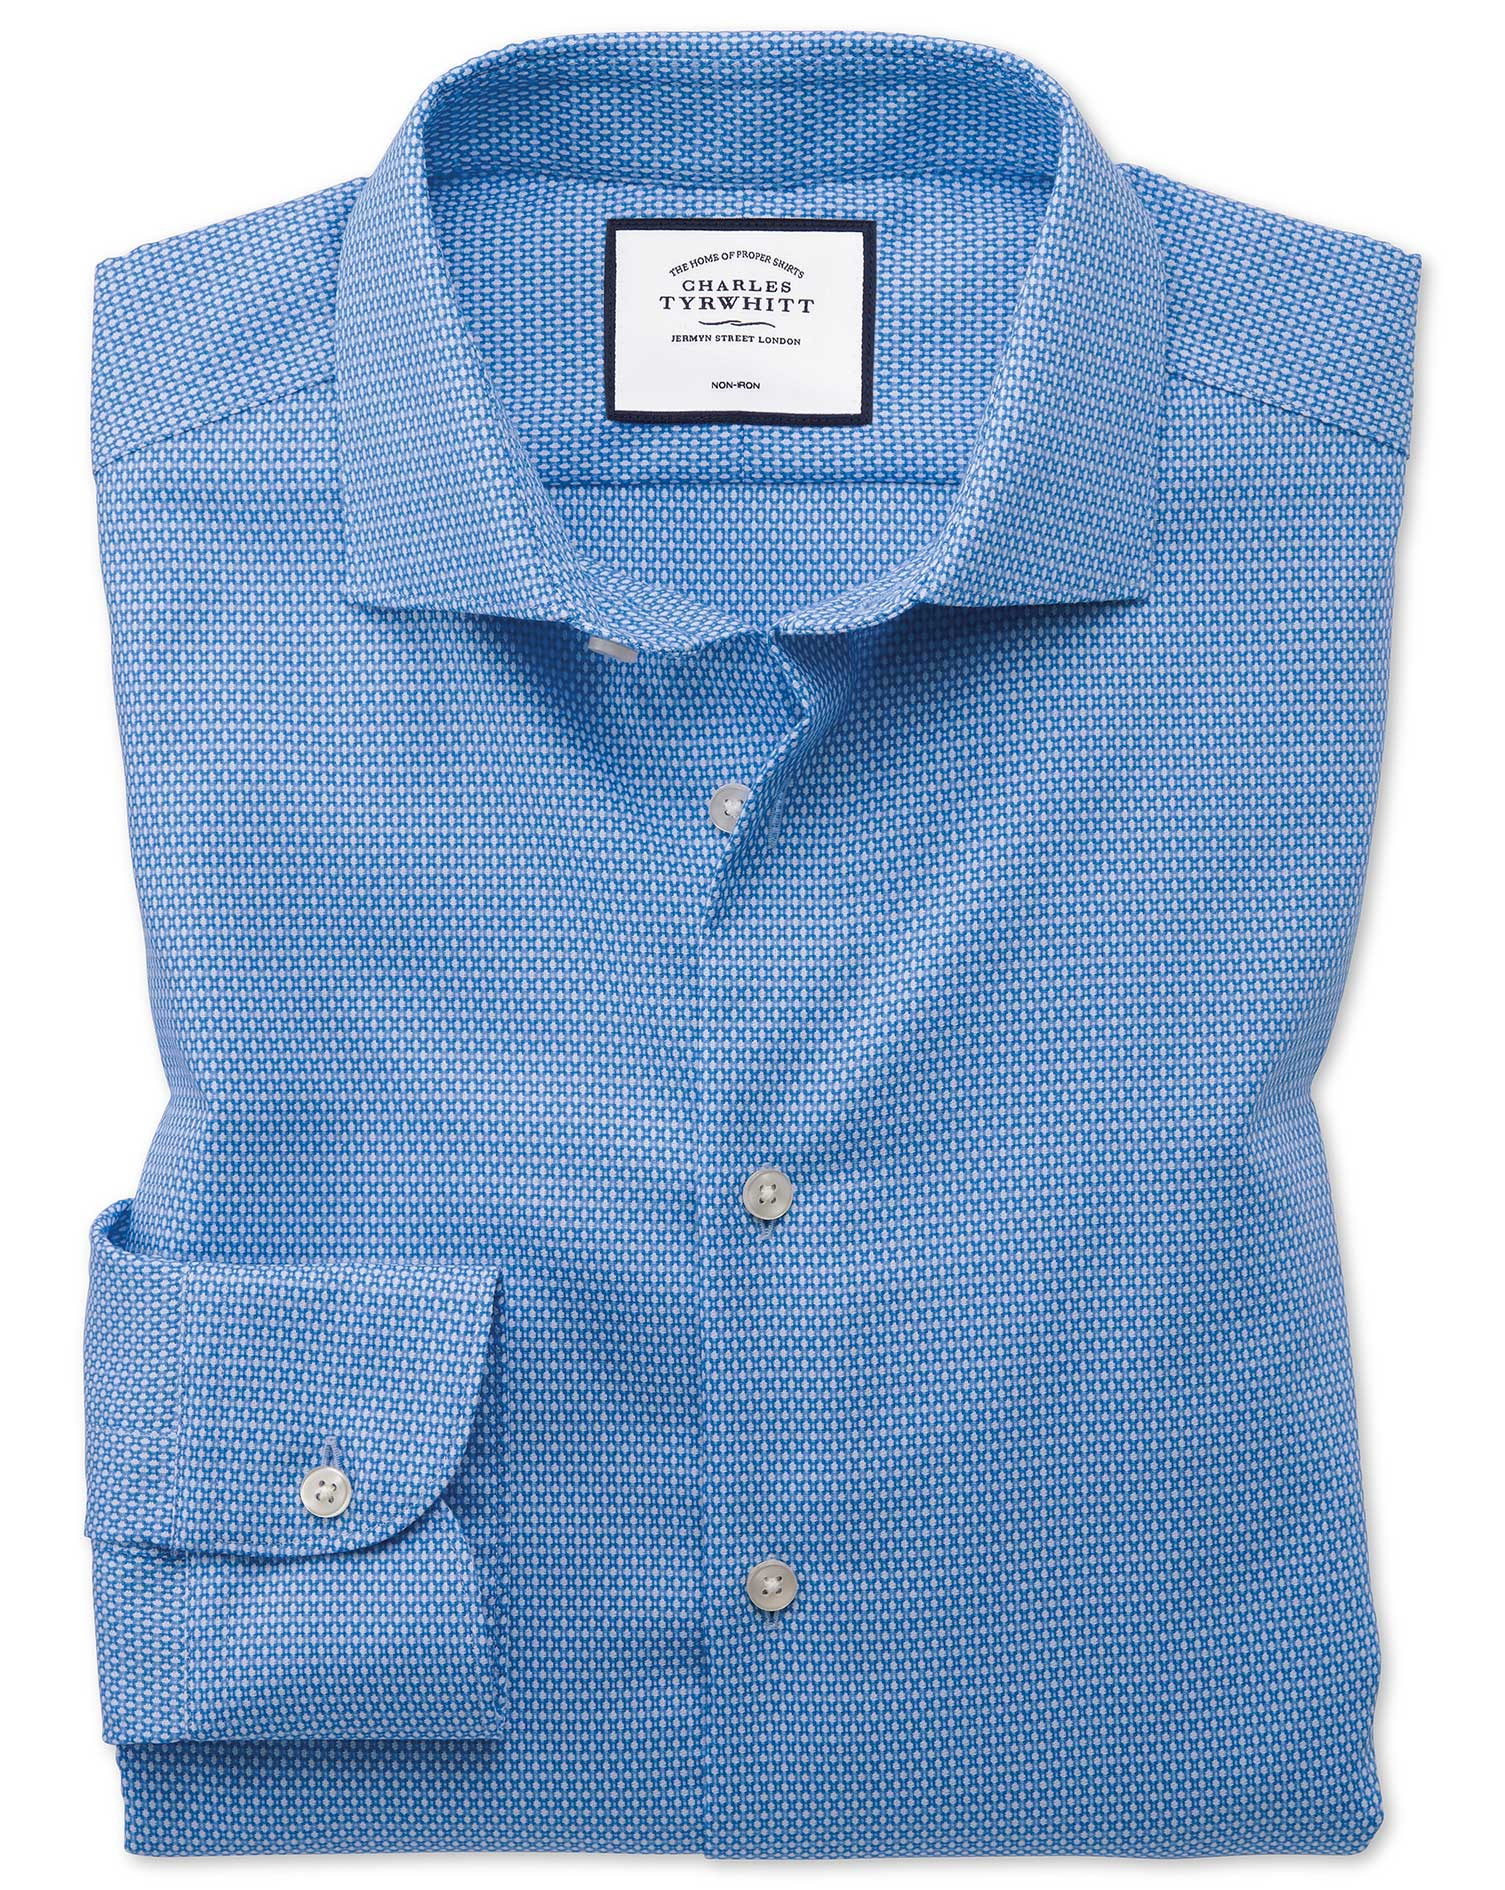 Slim Fit Business Casual Non-Iron Modern Textures Sky Blue Cotton Formal Shirt Single Cuff Size 16.5